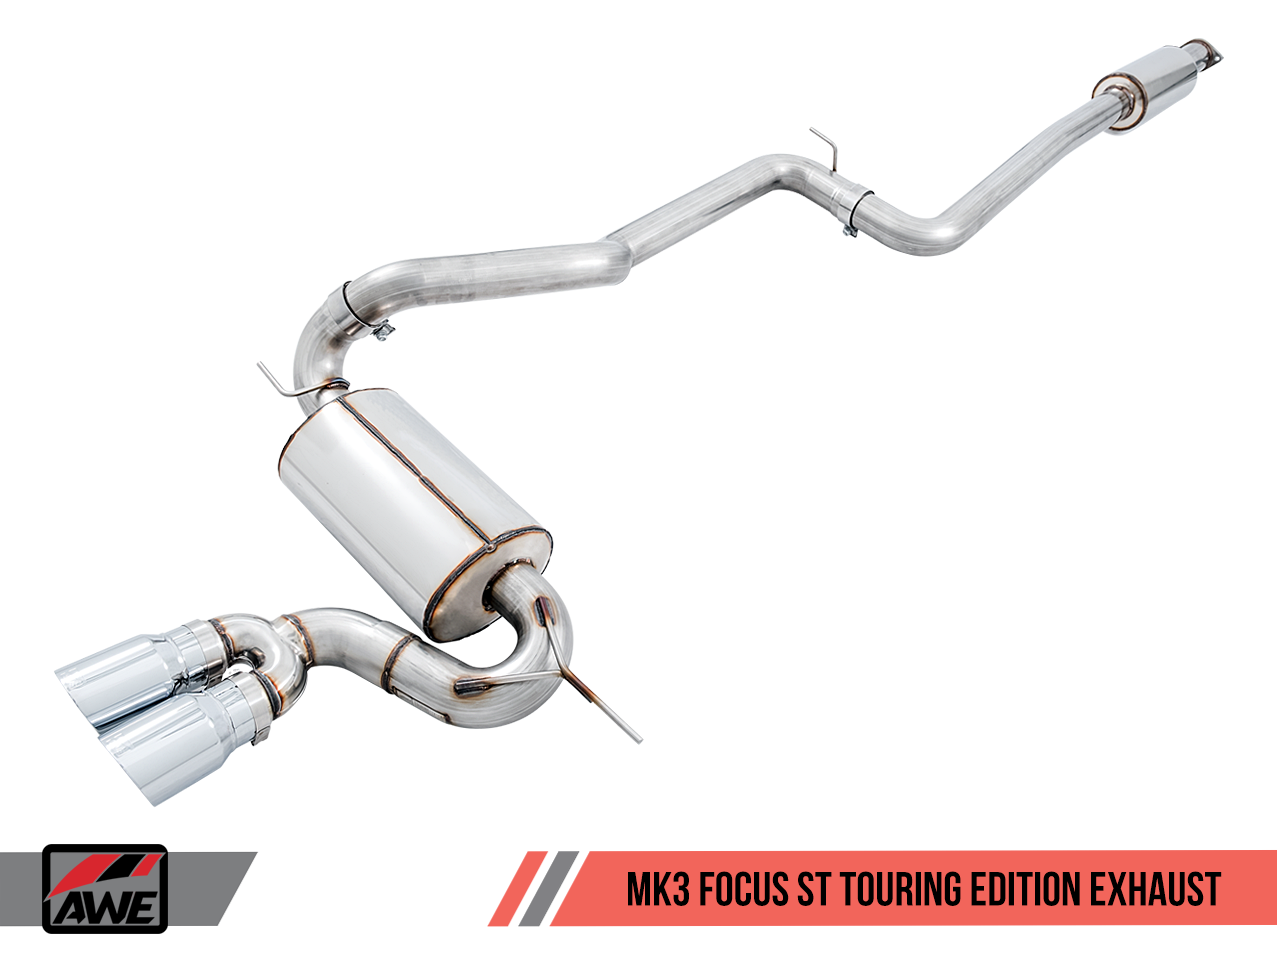 13-17 Ford Focus ST AWE MK3 Cat-back Exhaust - Touring Edition